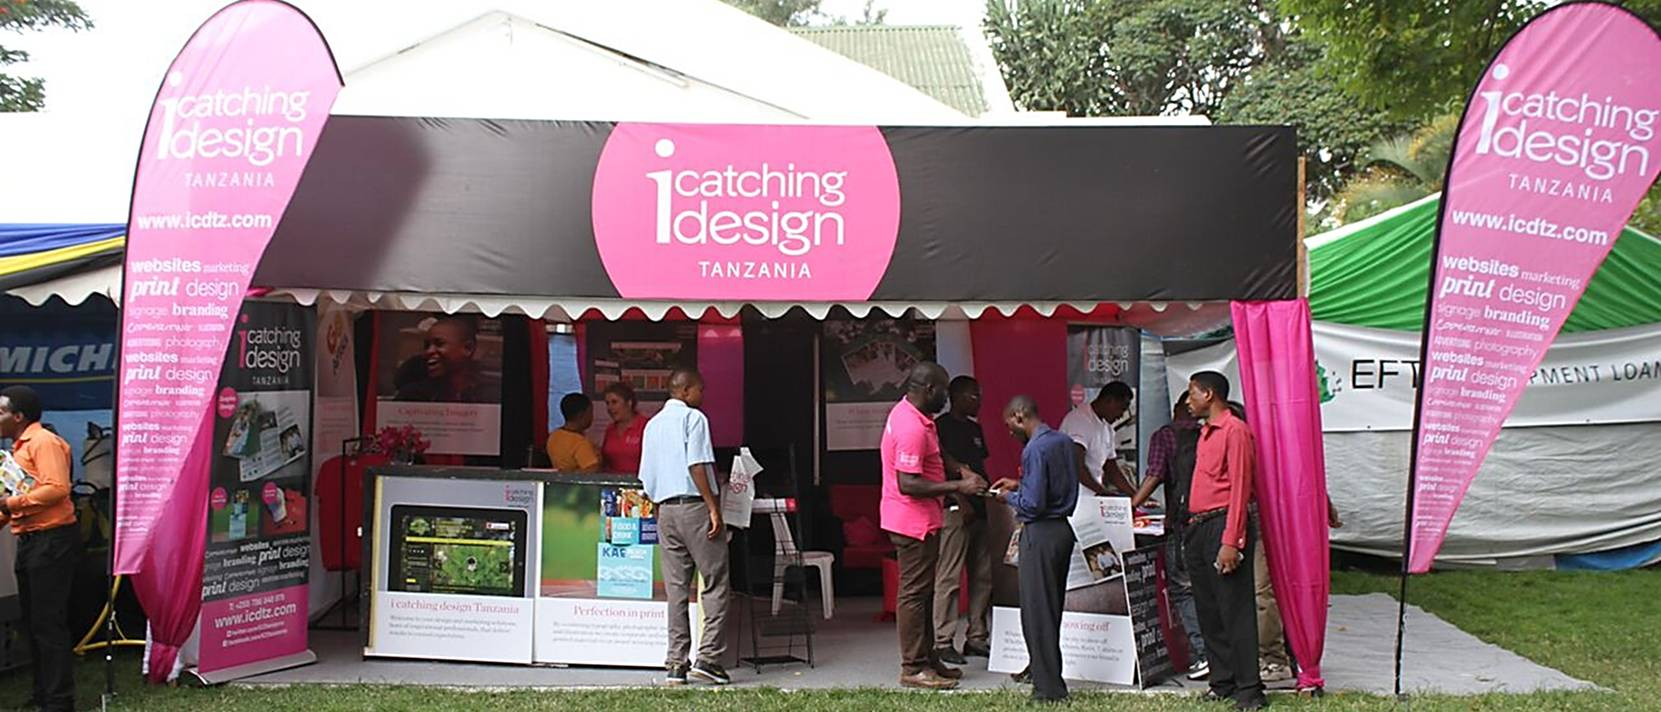 i catching design stand on grass with people chatting